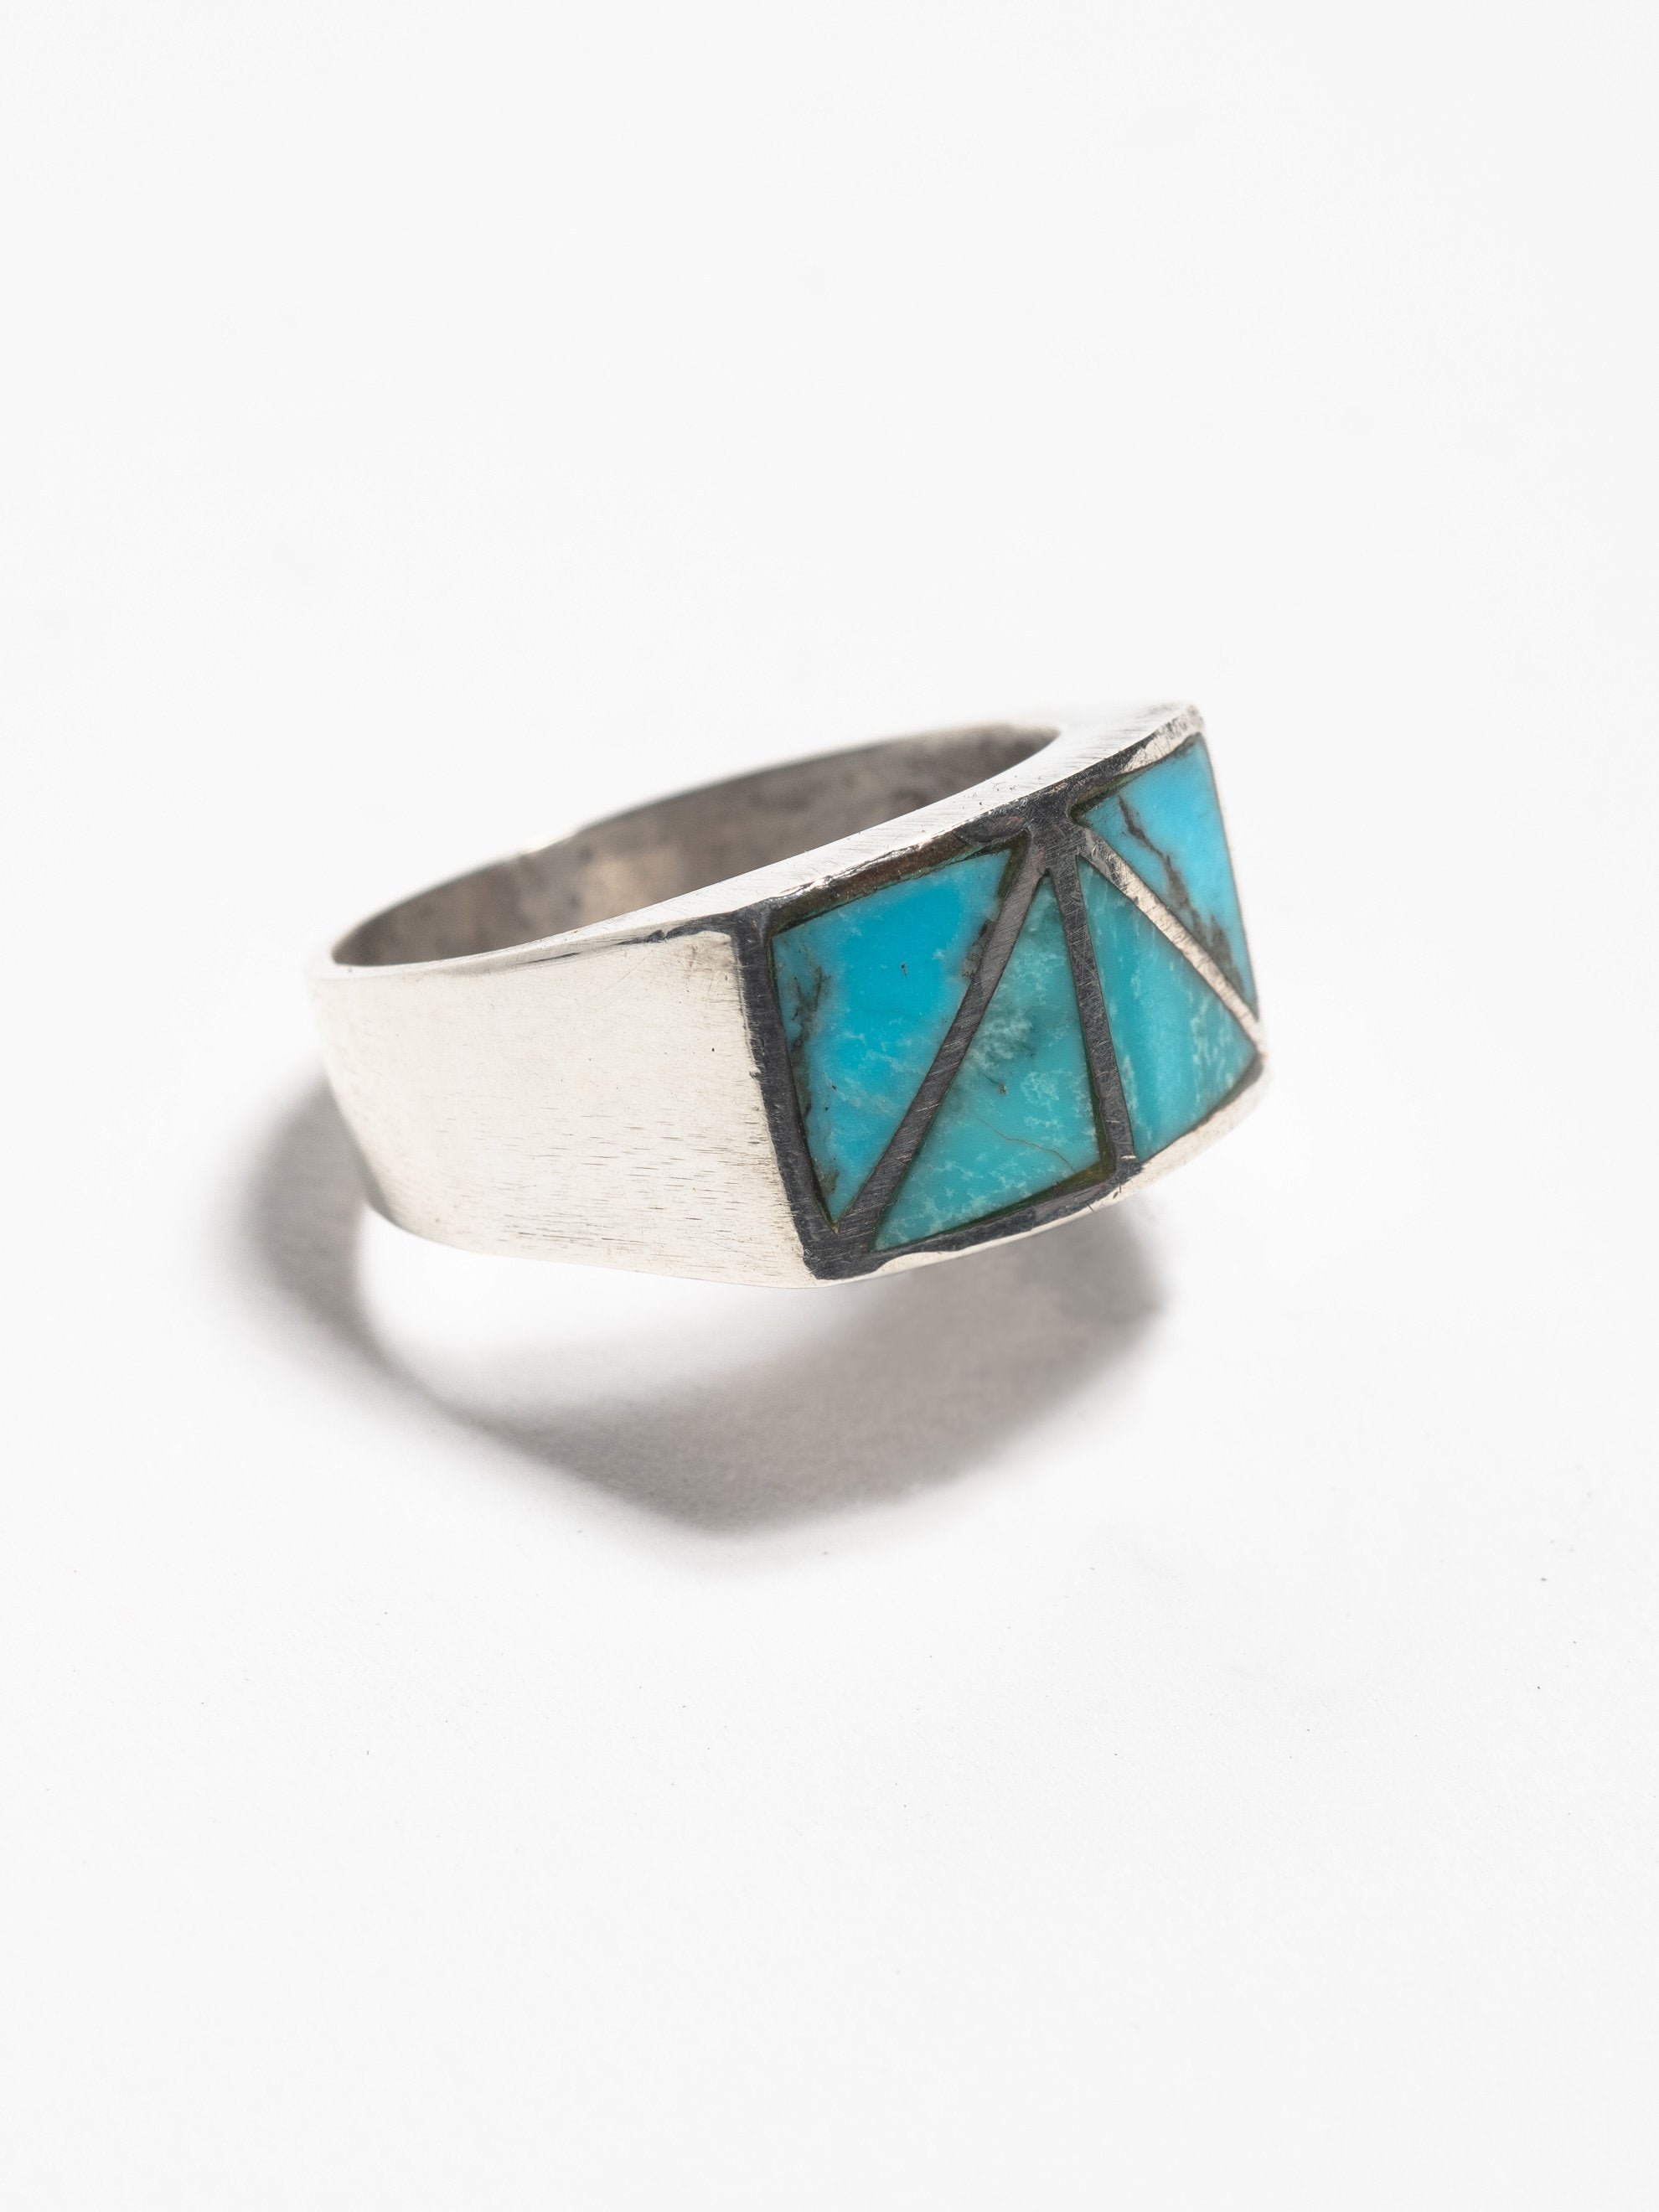 Sterling Silver Vintage Navajo Heavy Gauge Sterling Silver Ring with inset sterling chanels and inlayed turquoise 2